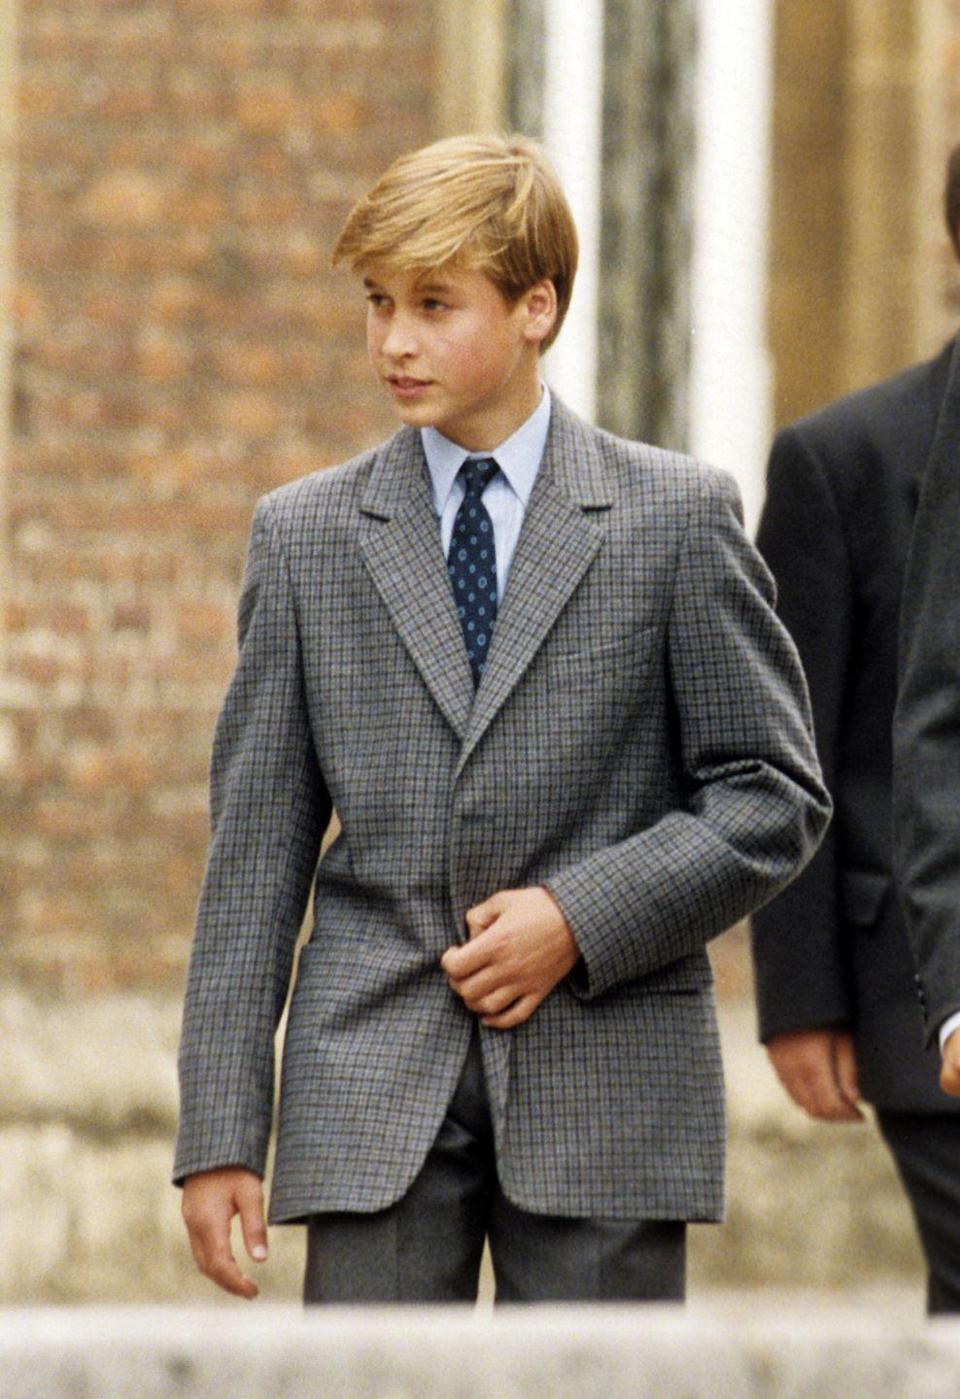 <p>Looking dapper on his first day at Eton College! (Which isn't an actual college, by the way. It's an extremely elite boarding school, natch.) </p>